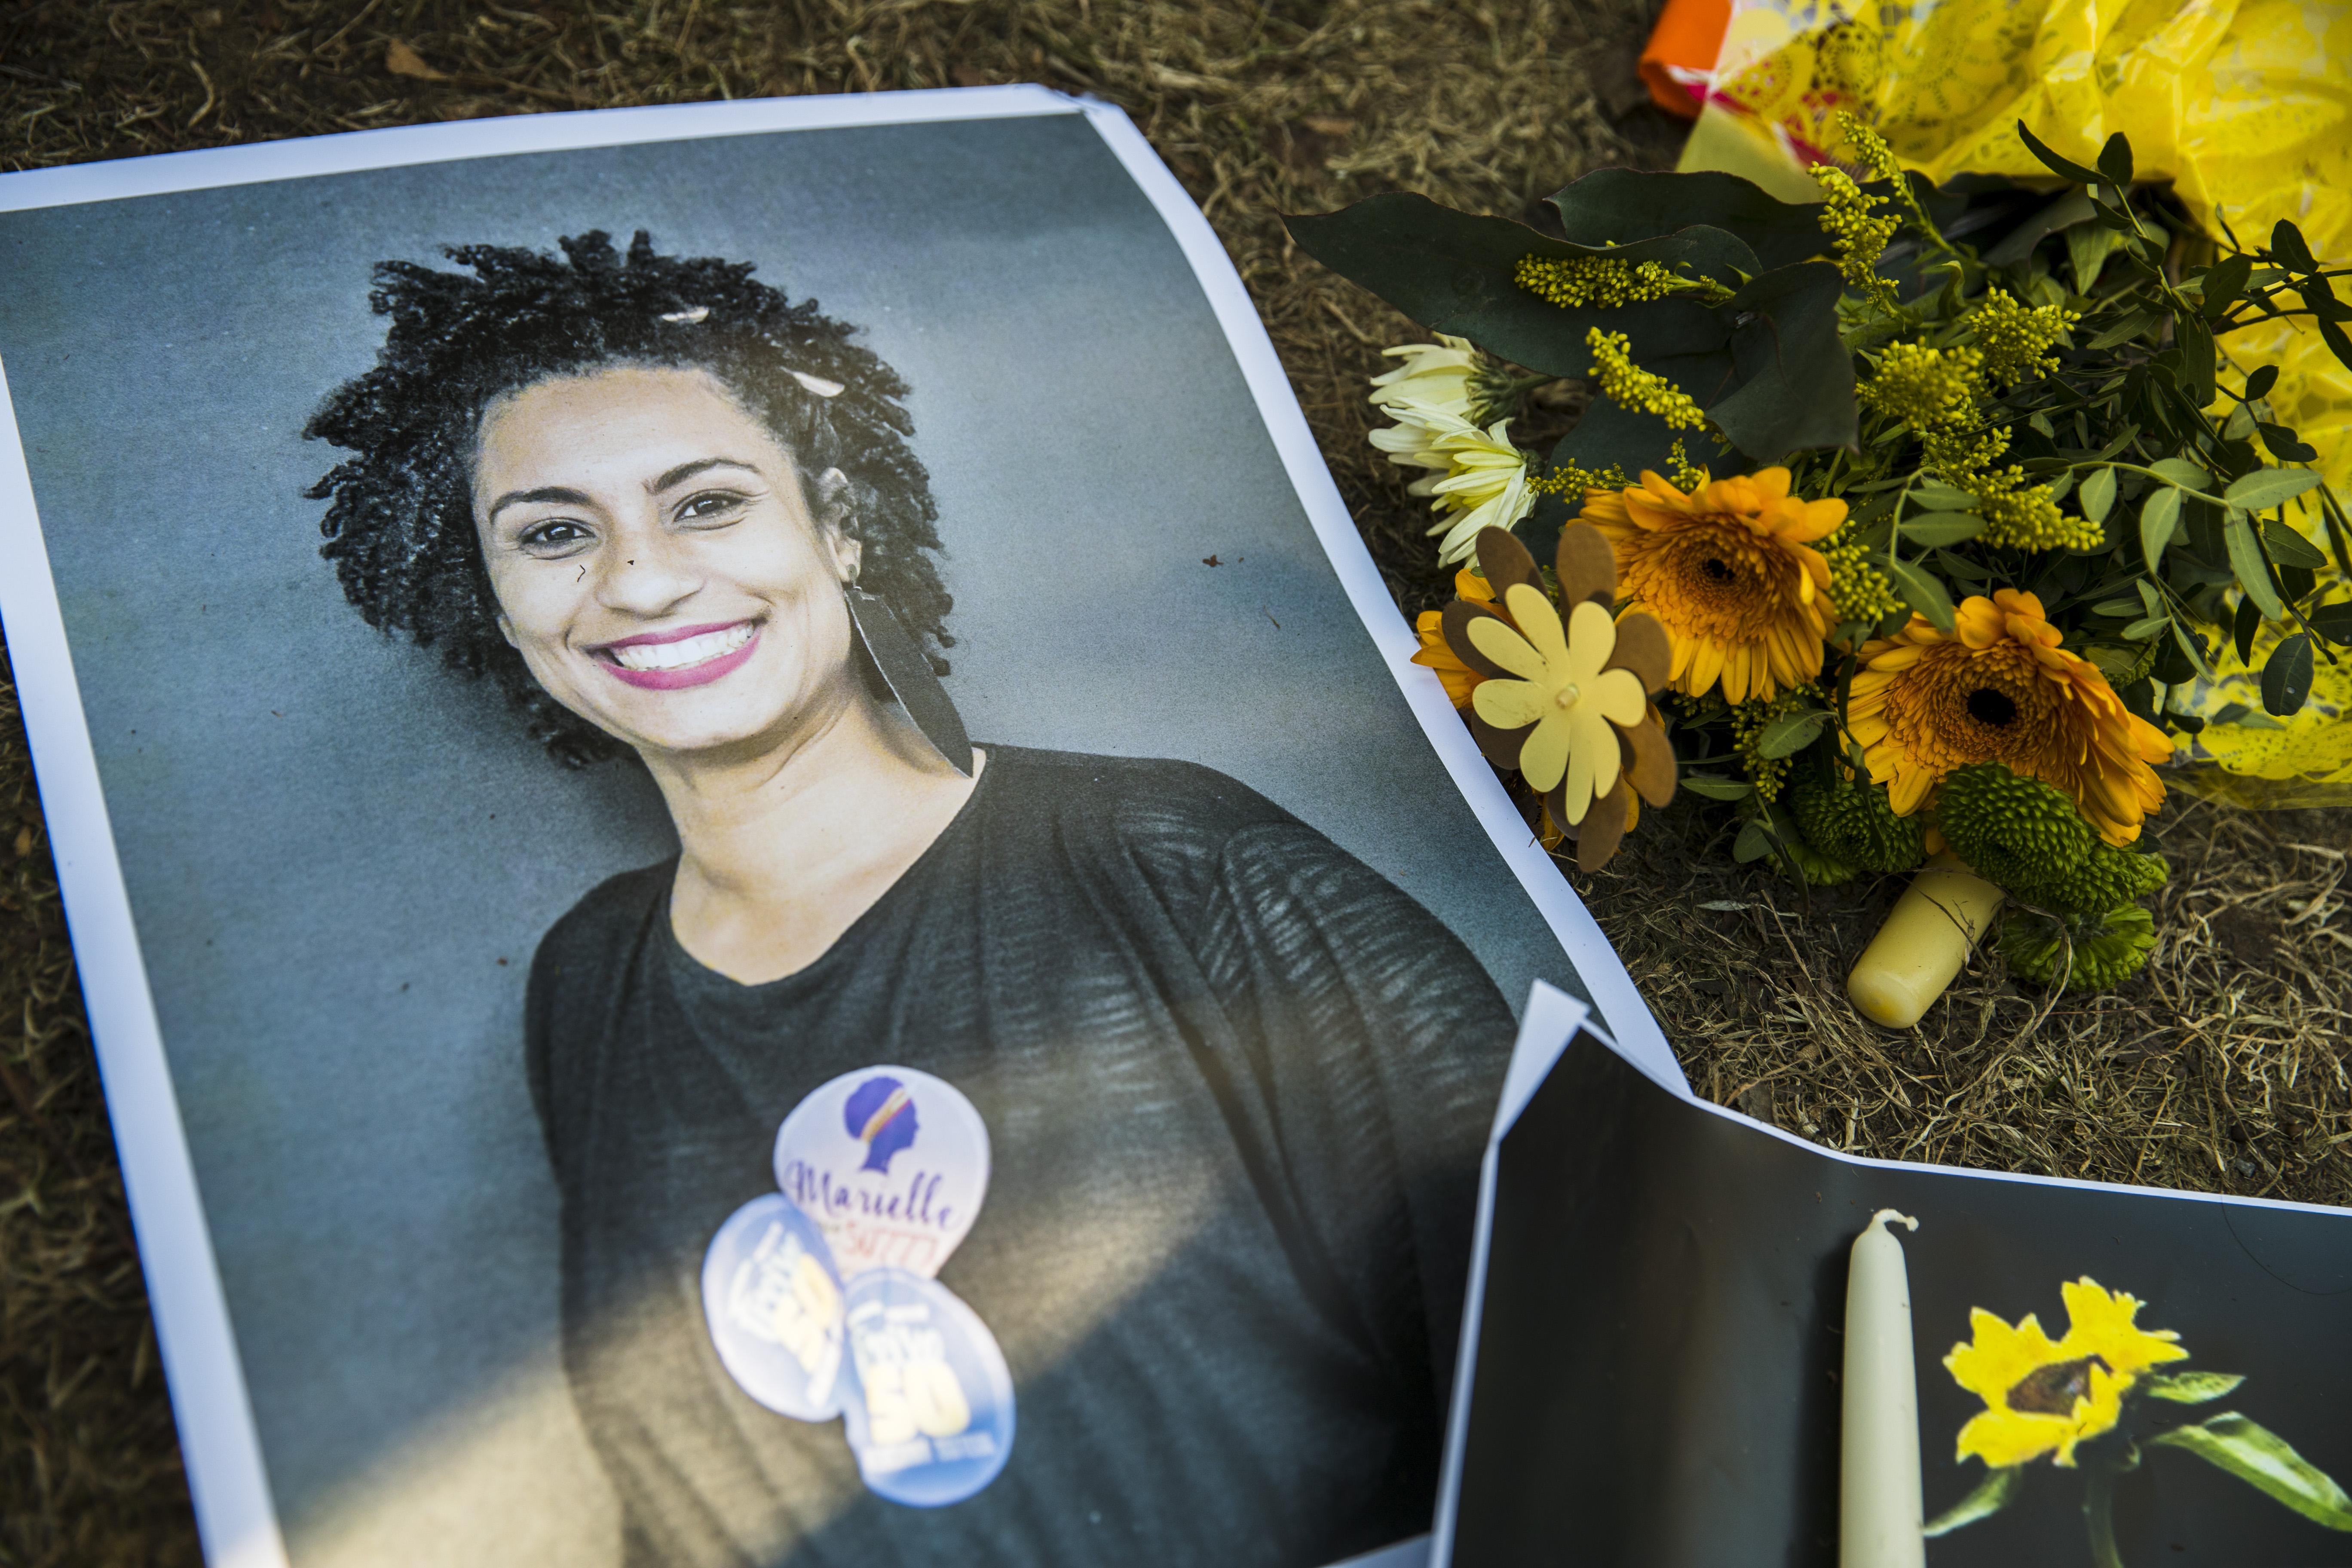 A makeshift memorial is pictured during a protest of Brazilian expats against the killing of Rio de Janeiro's left councilwoman and activist Marielle Franco in Berlin, Germany on Mar. 18, 2018.